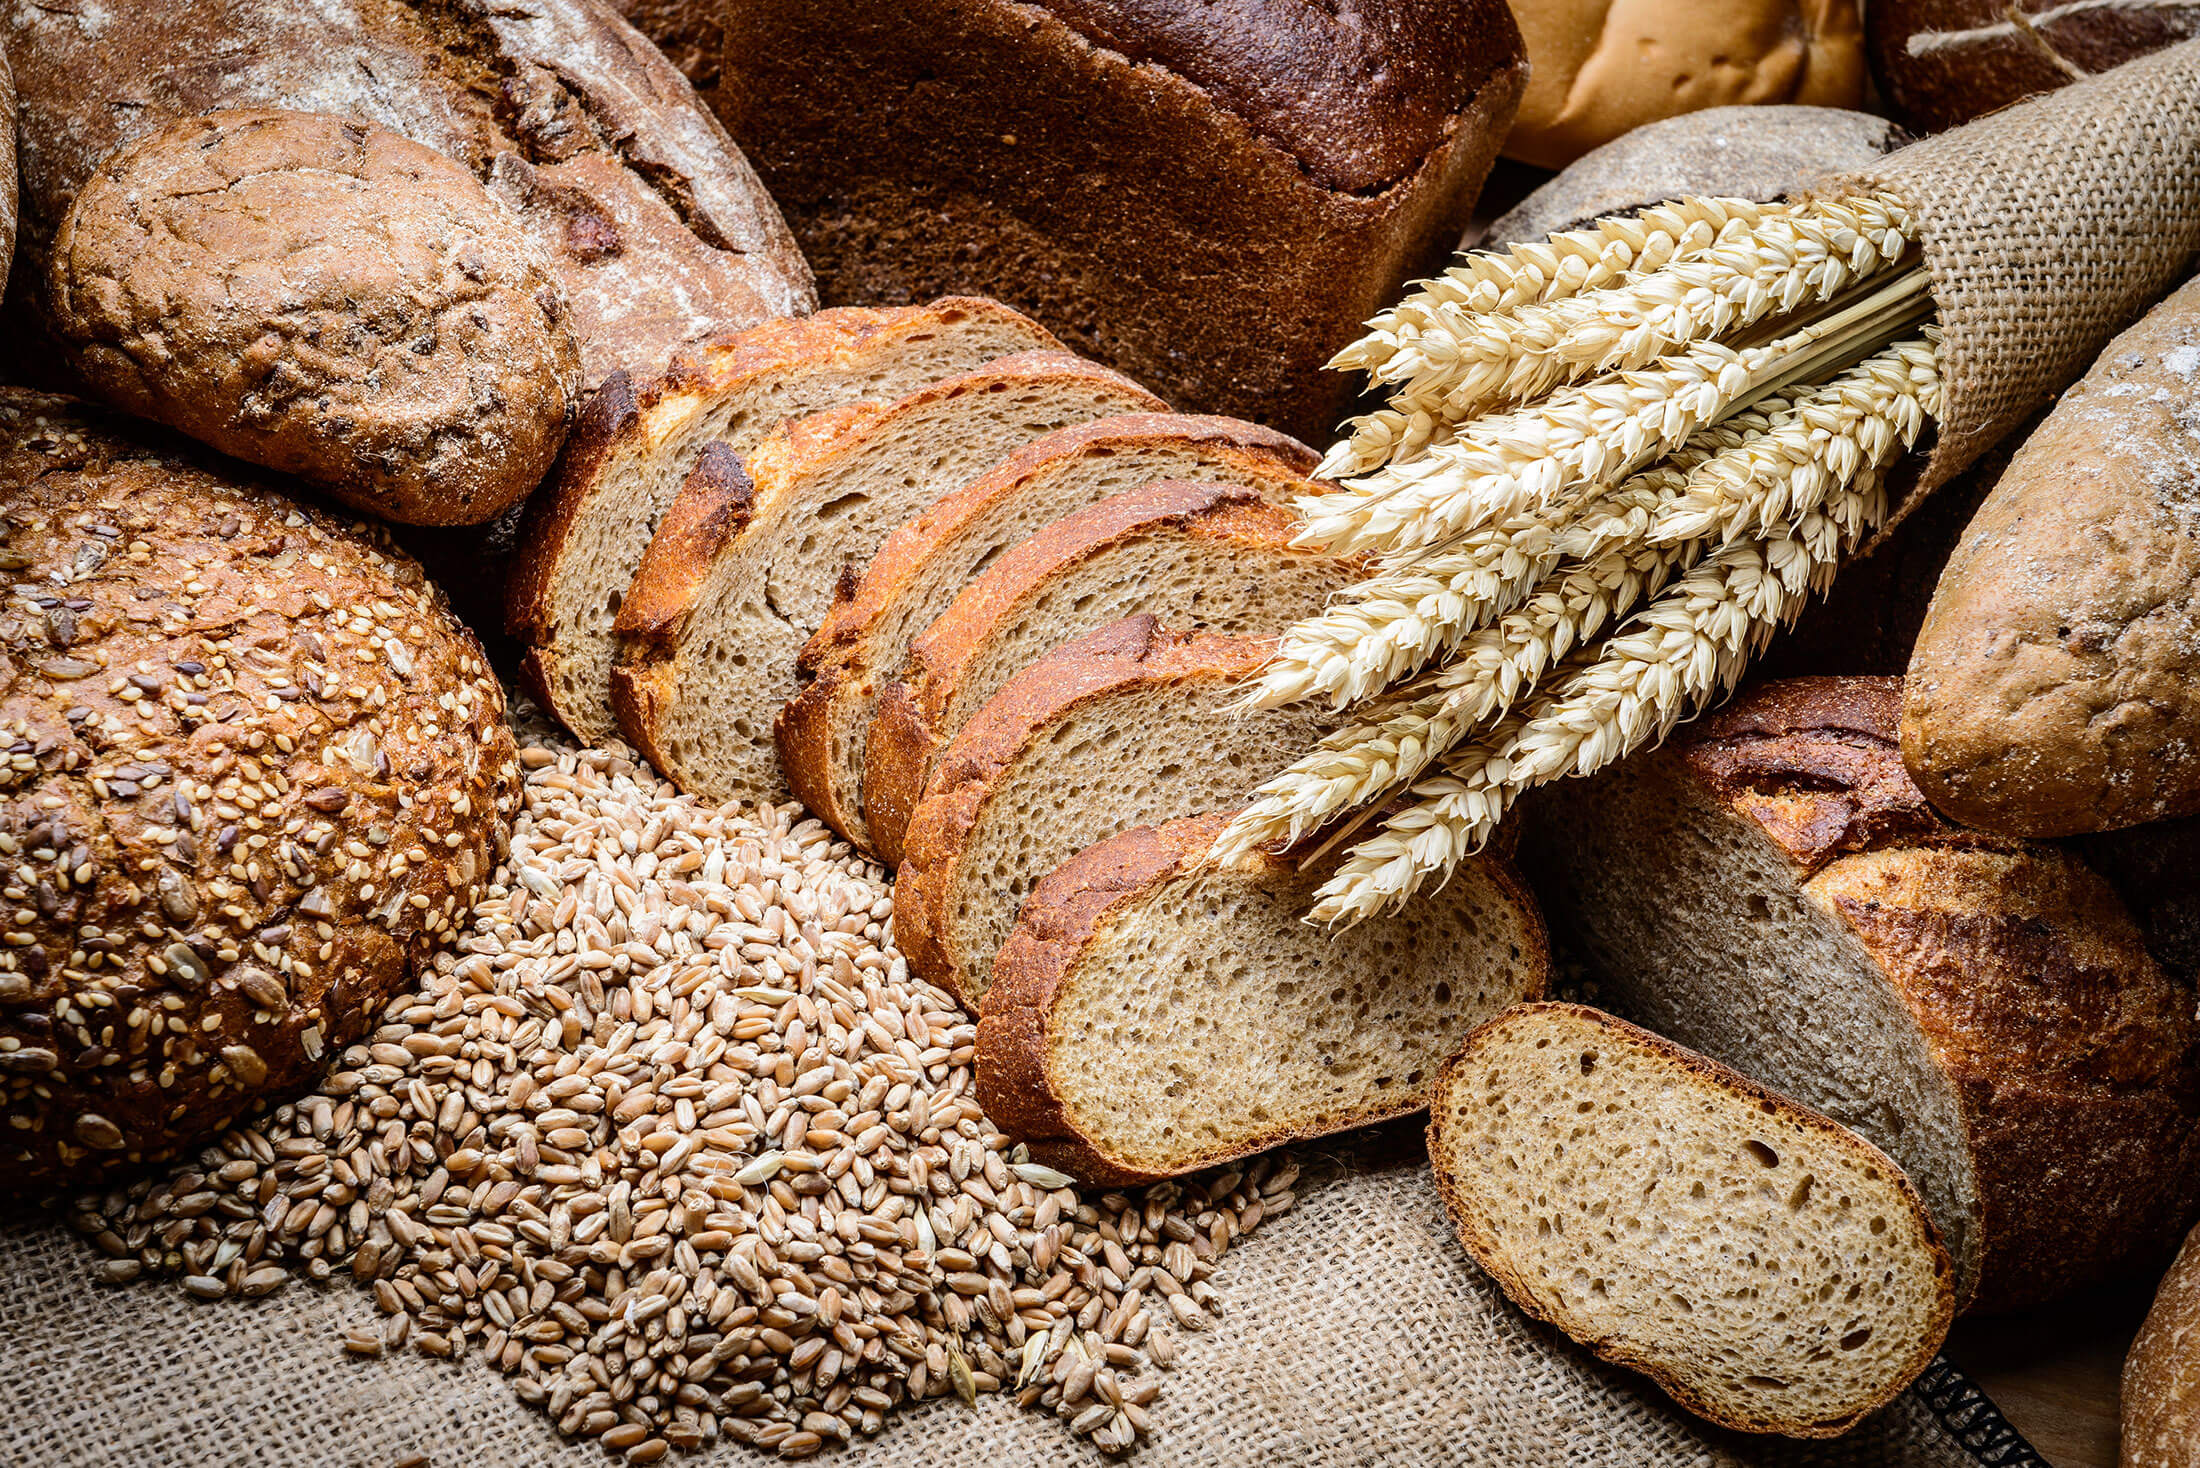 Whole grain ideal food for increasing breast milk supply